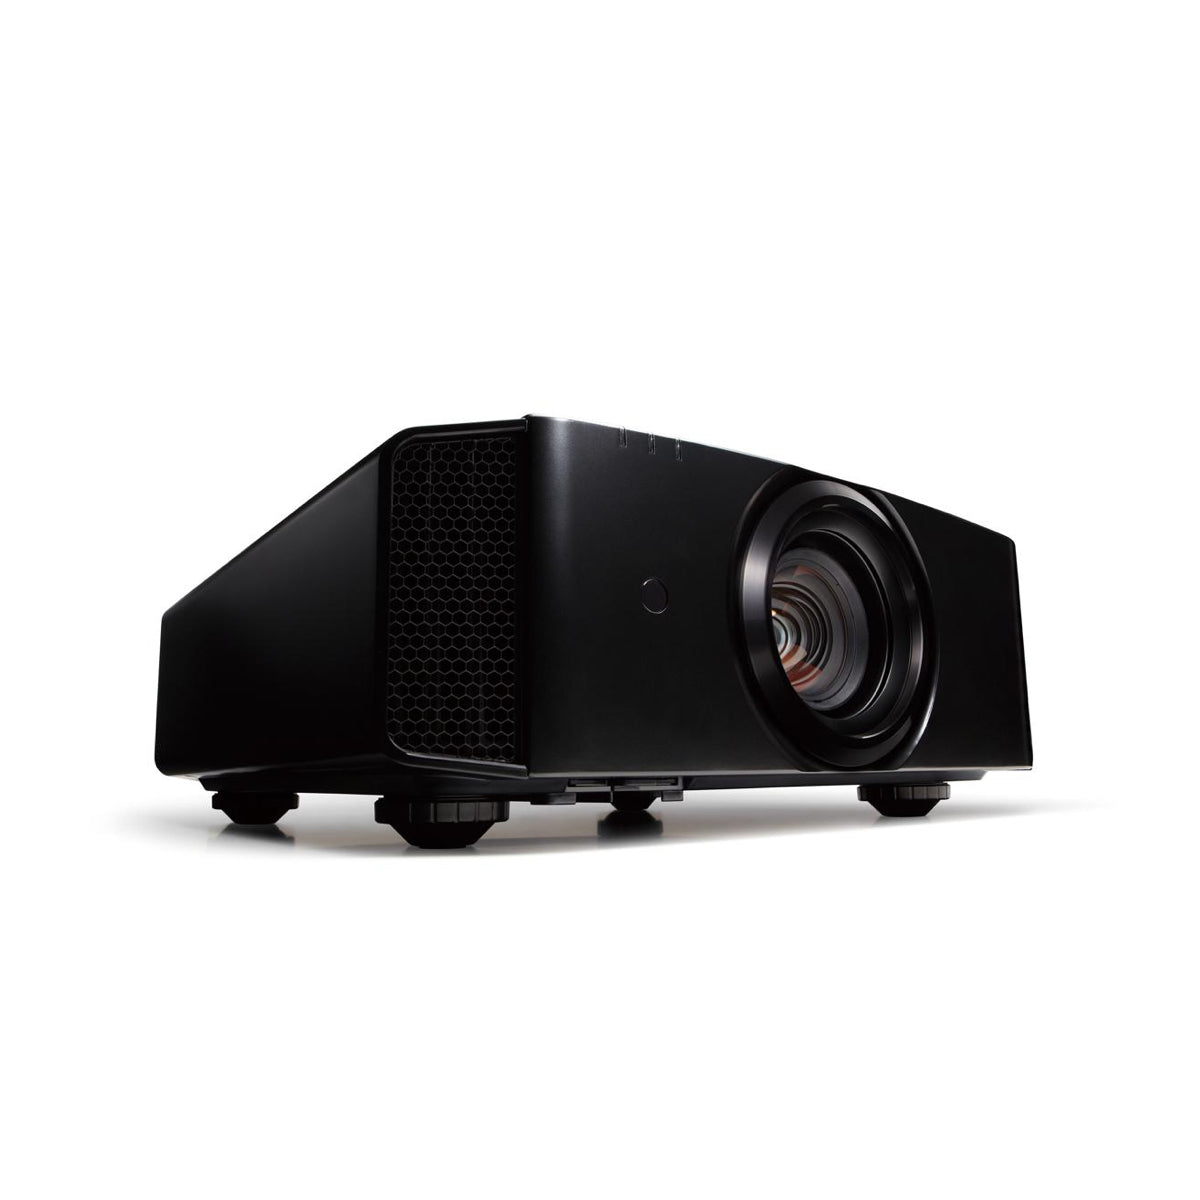 JVC DLA-X5900B (4K e-shift5 Projector) - AVStore.in